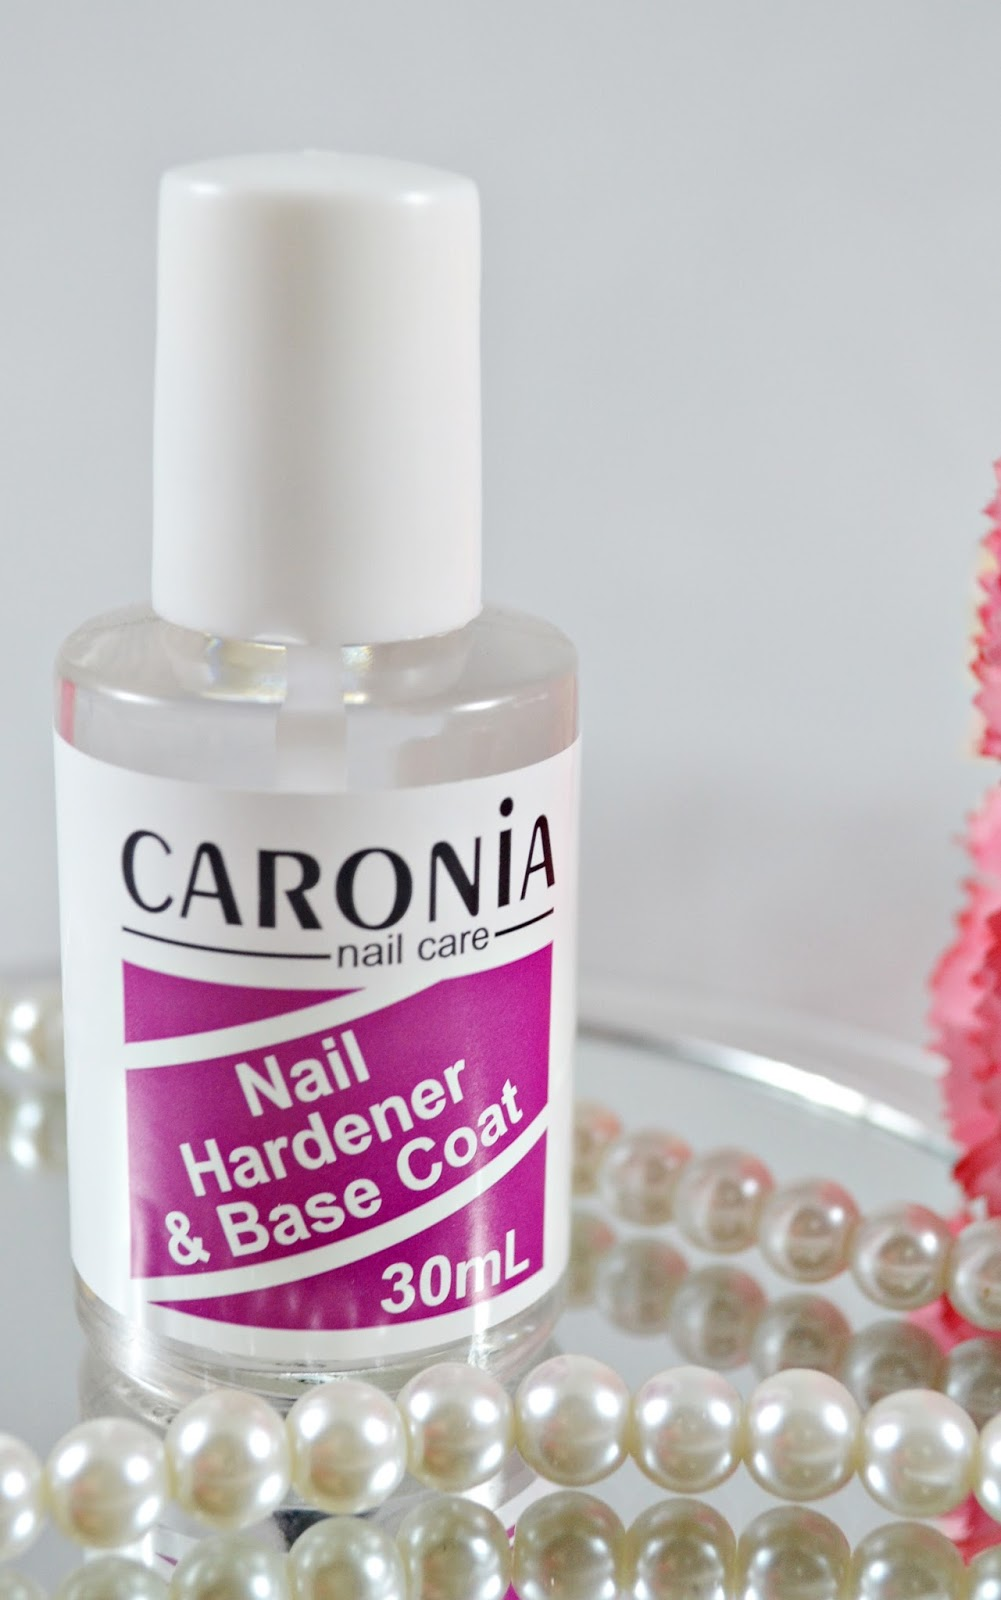 Caronia: Nail Hardener and Base Coat | All About Beauty 101